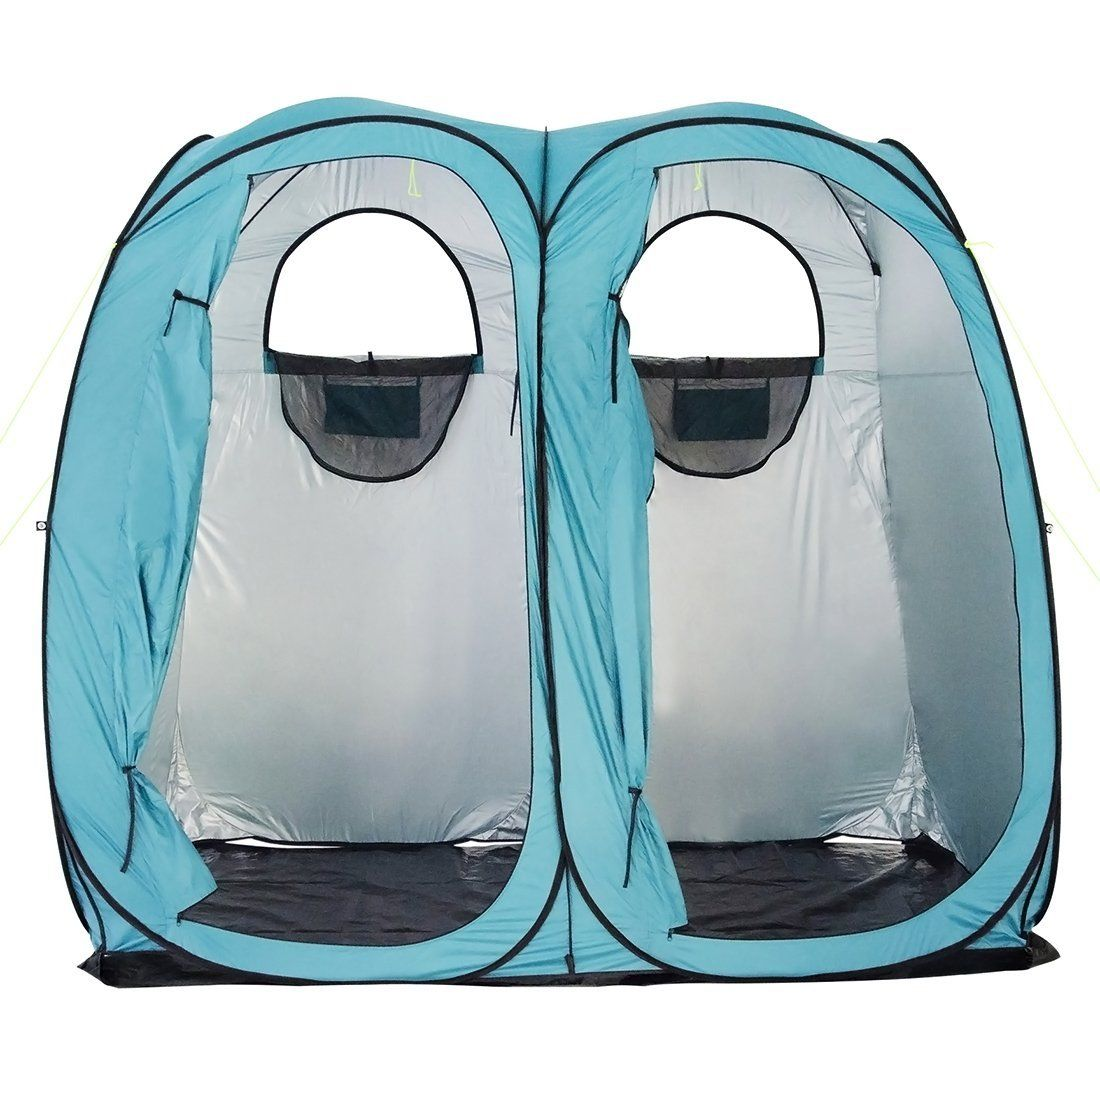 Portable Double Changing Room Shower tent, Camping